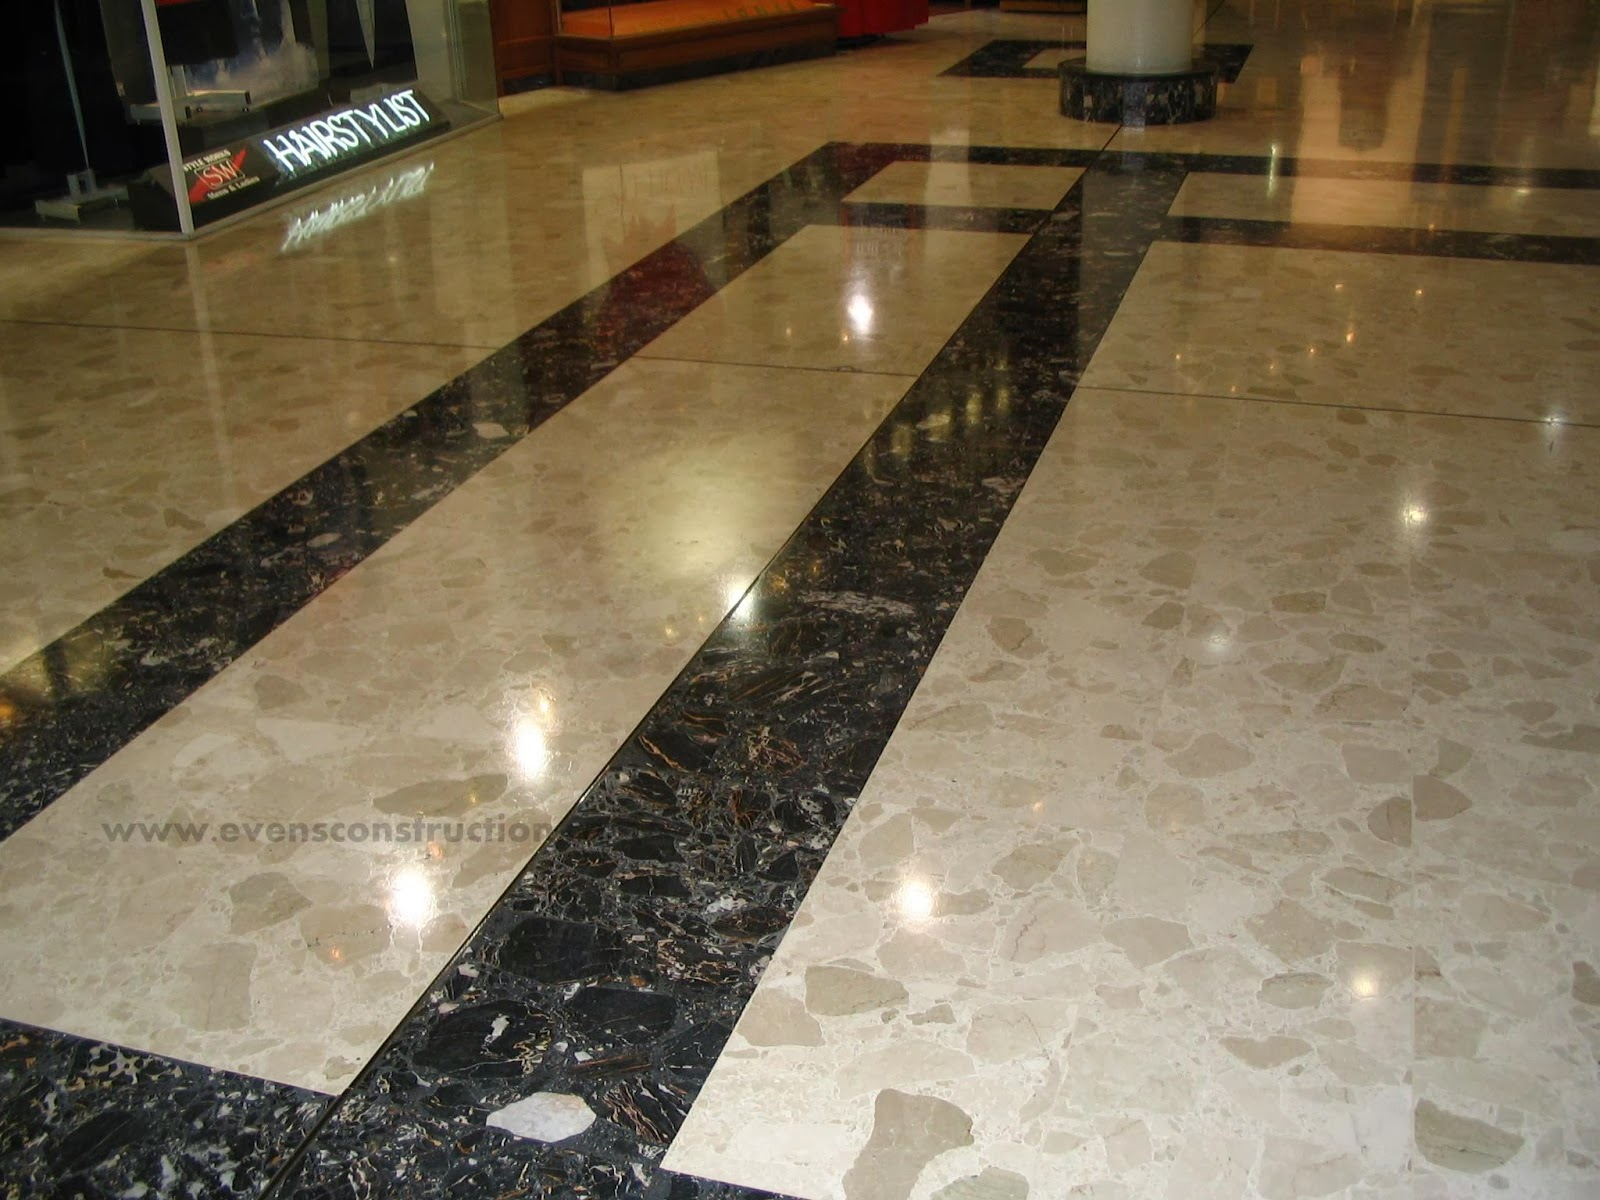 Evens construction pvt ltd marble flooring care and for At floor or on floor